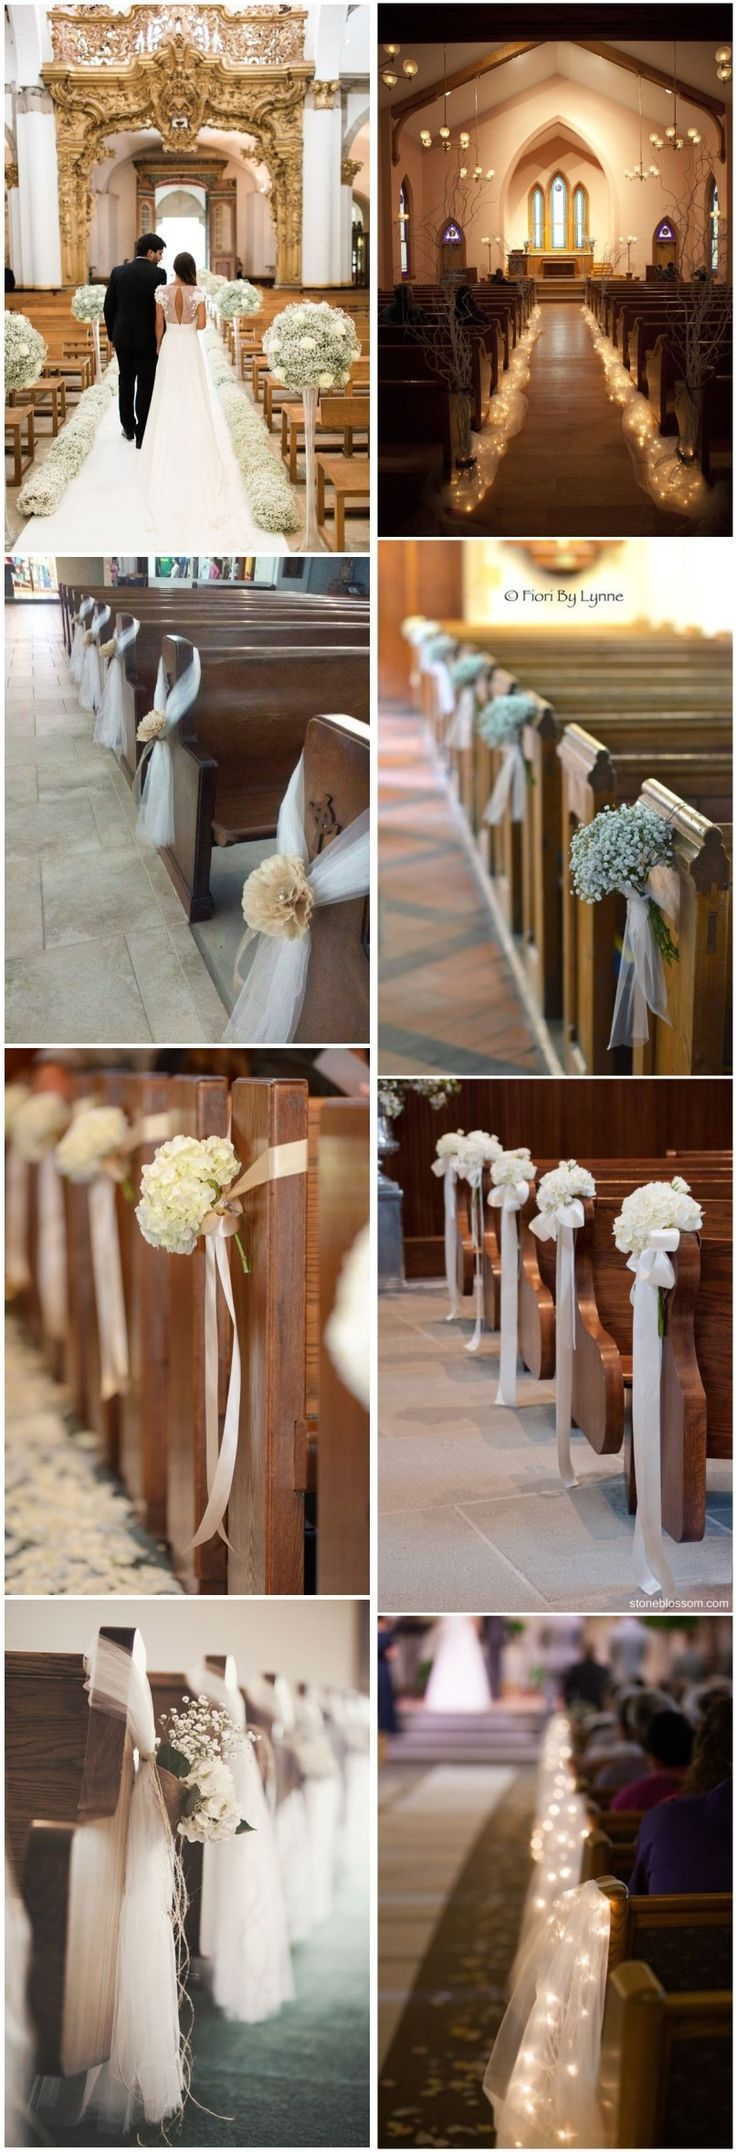 Homemade wedding decoration ideas   Stunning Church Wedding Aisle Decoration Ideas to Steal  A